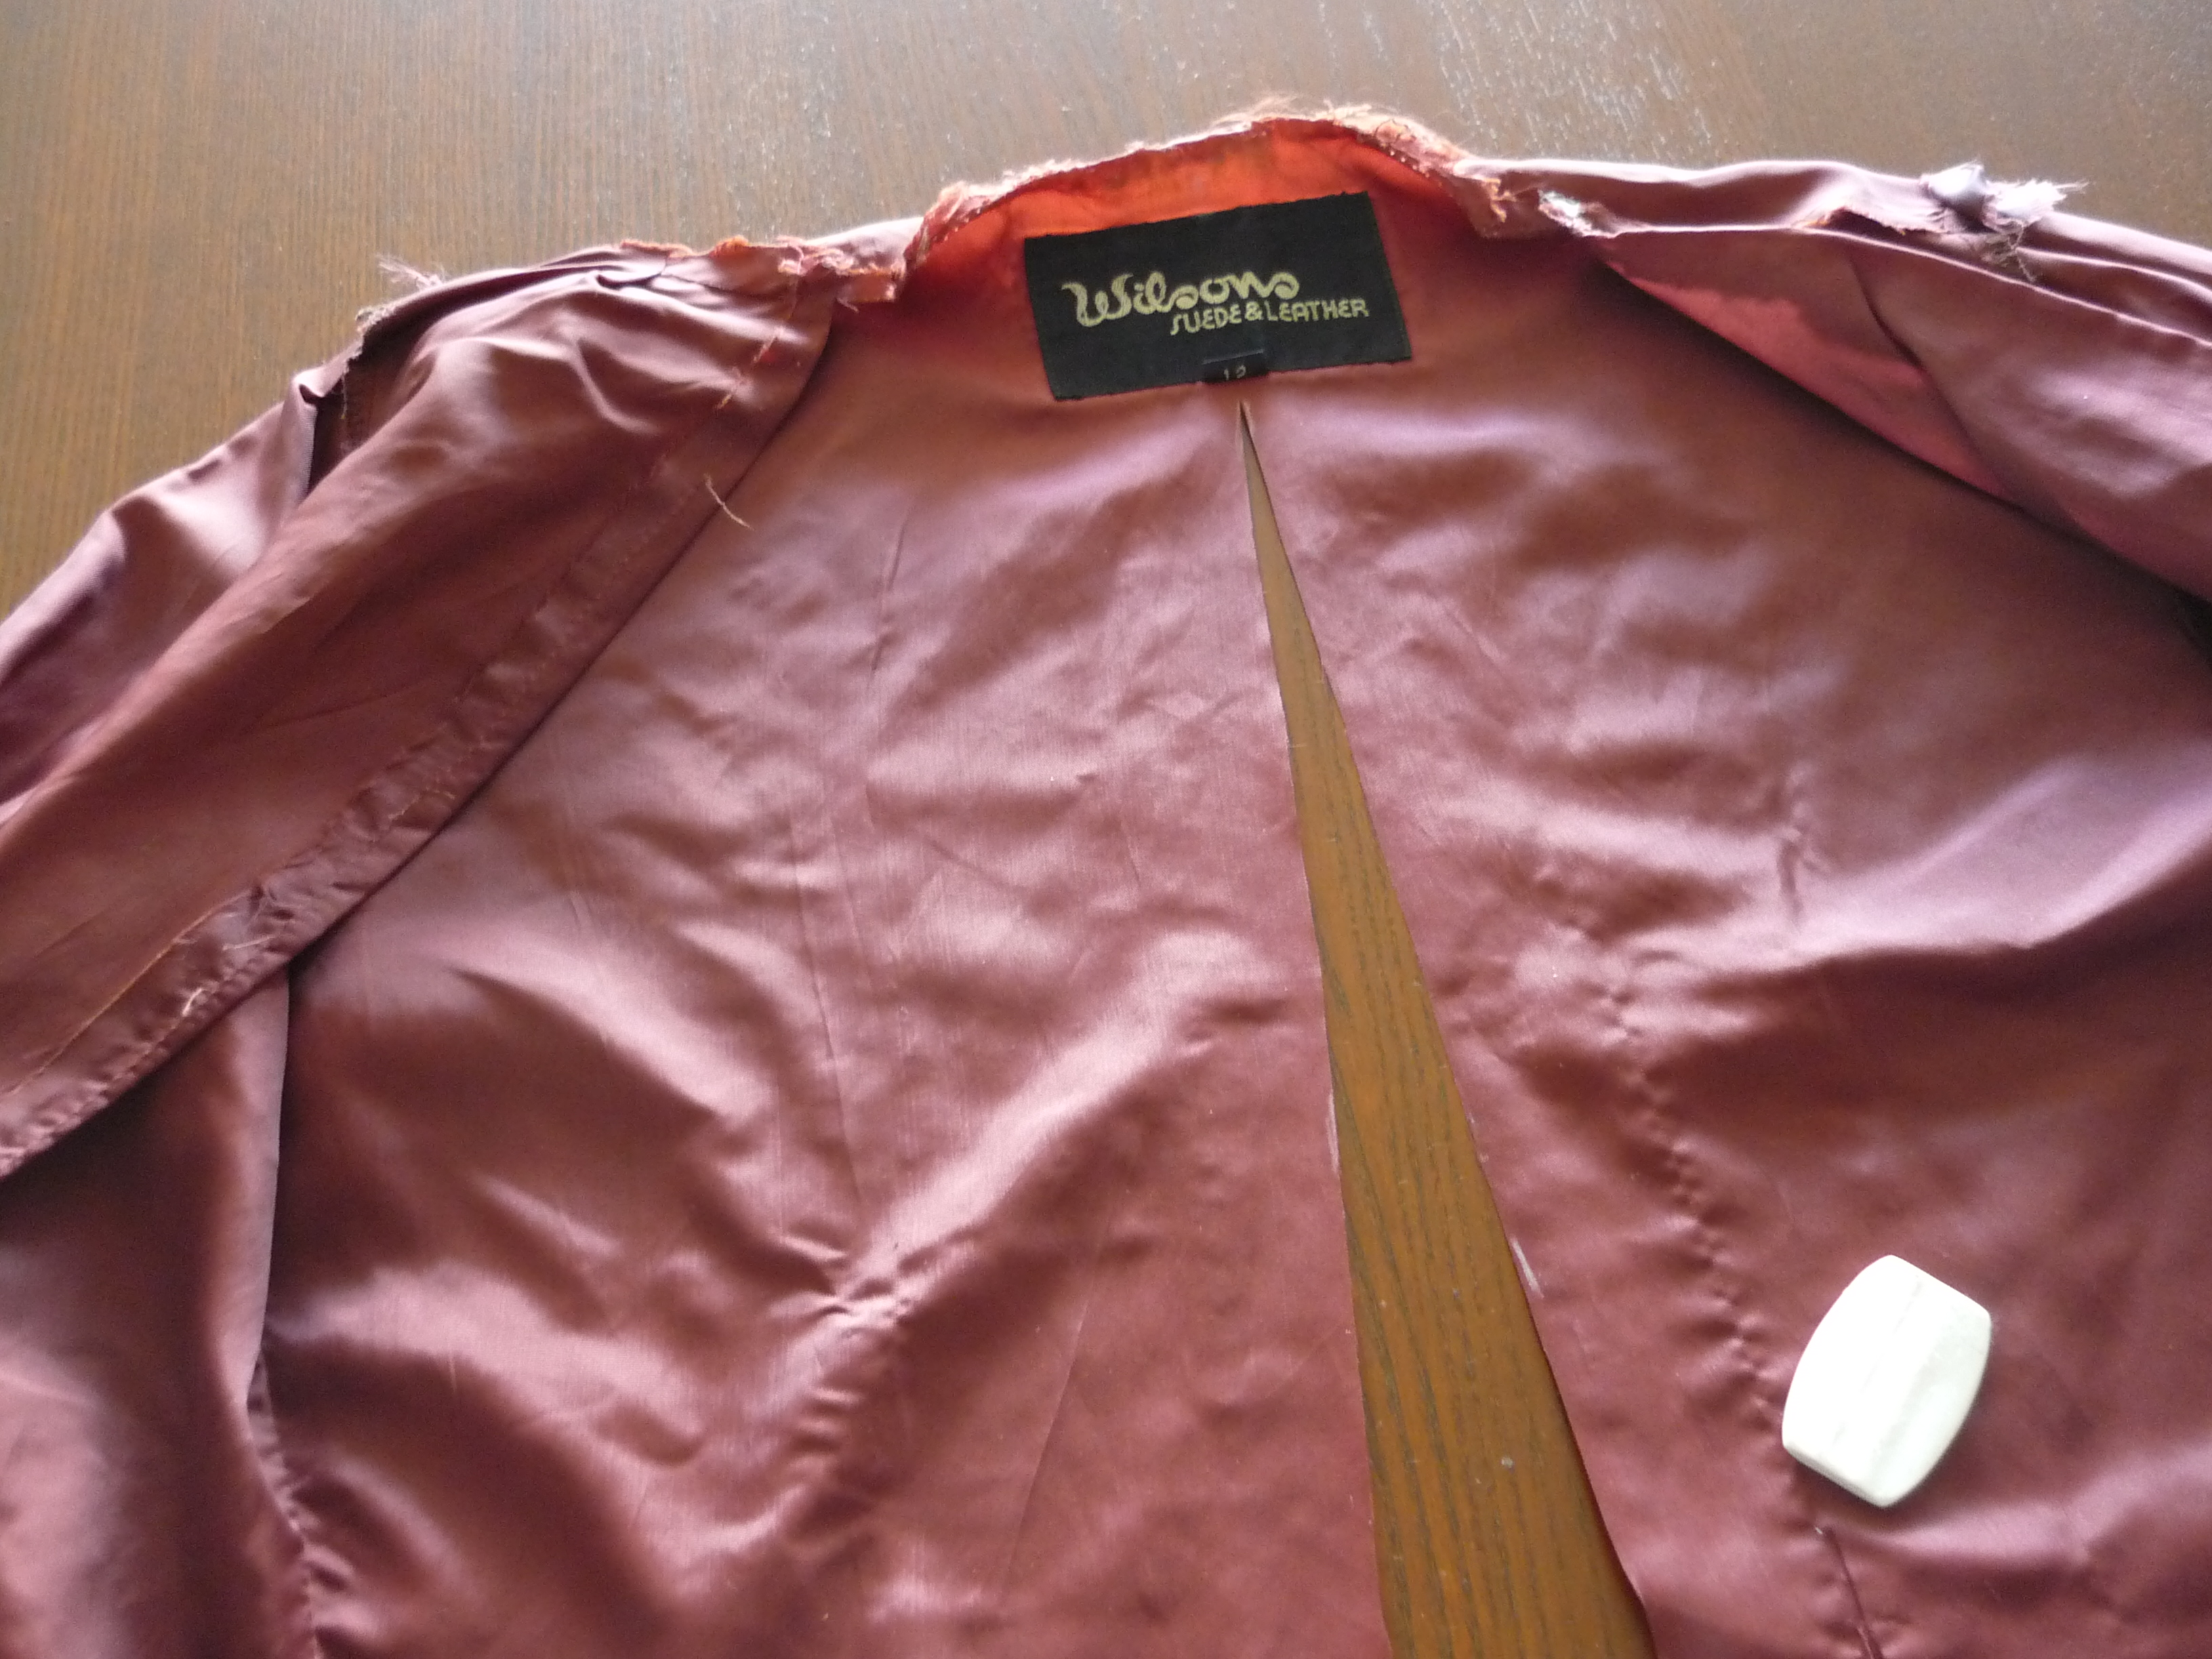 Leather jacket repair vancouver - Slice The Back Lining Piece Up The Middle Now You Have A Half Jacket Choose The Half With Less Rips And Holes To Use For The Next Step